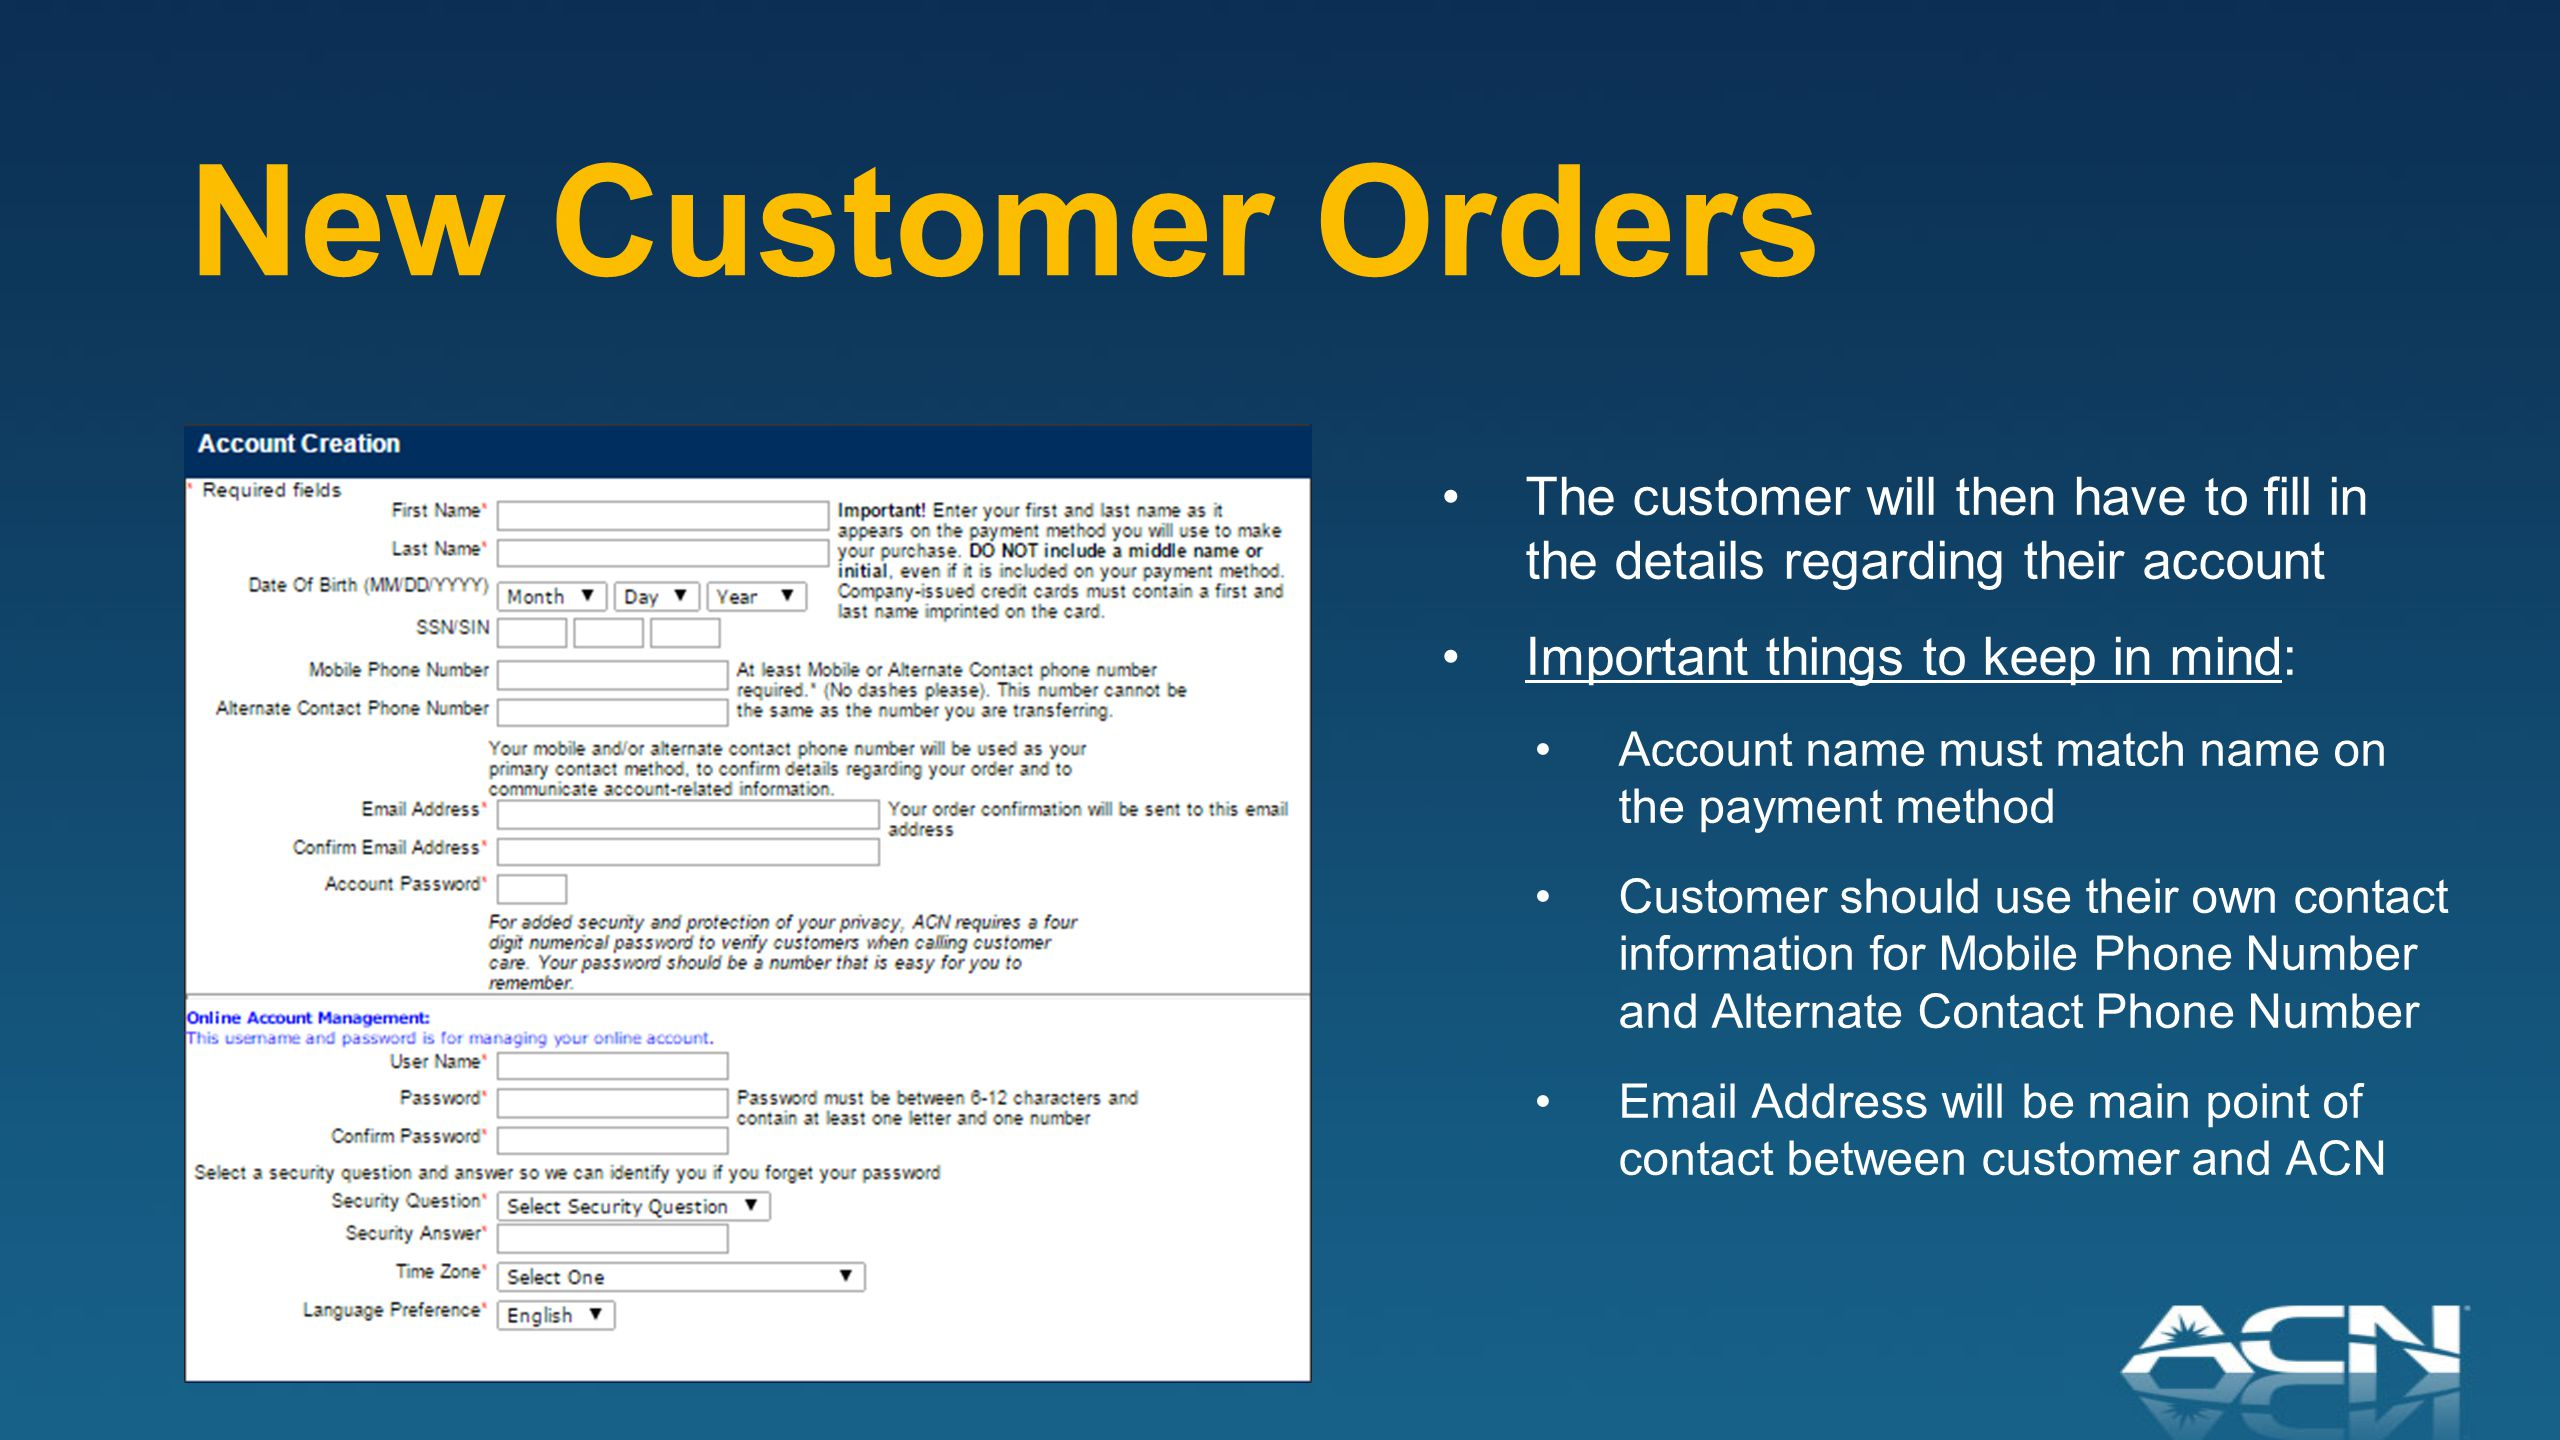 New Customer Orders The customer will then have to fill in the details regarding their account Important things to keep in mind: Account name must match name on the payment method Customer should use their own contact information for Mobile Phone Number and Alternate Contact Phone Number Email Address will be main point of contact between customer and ACN